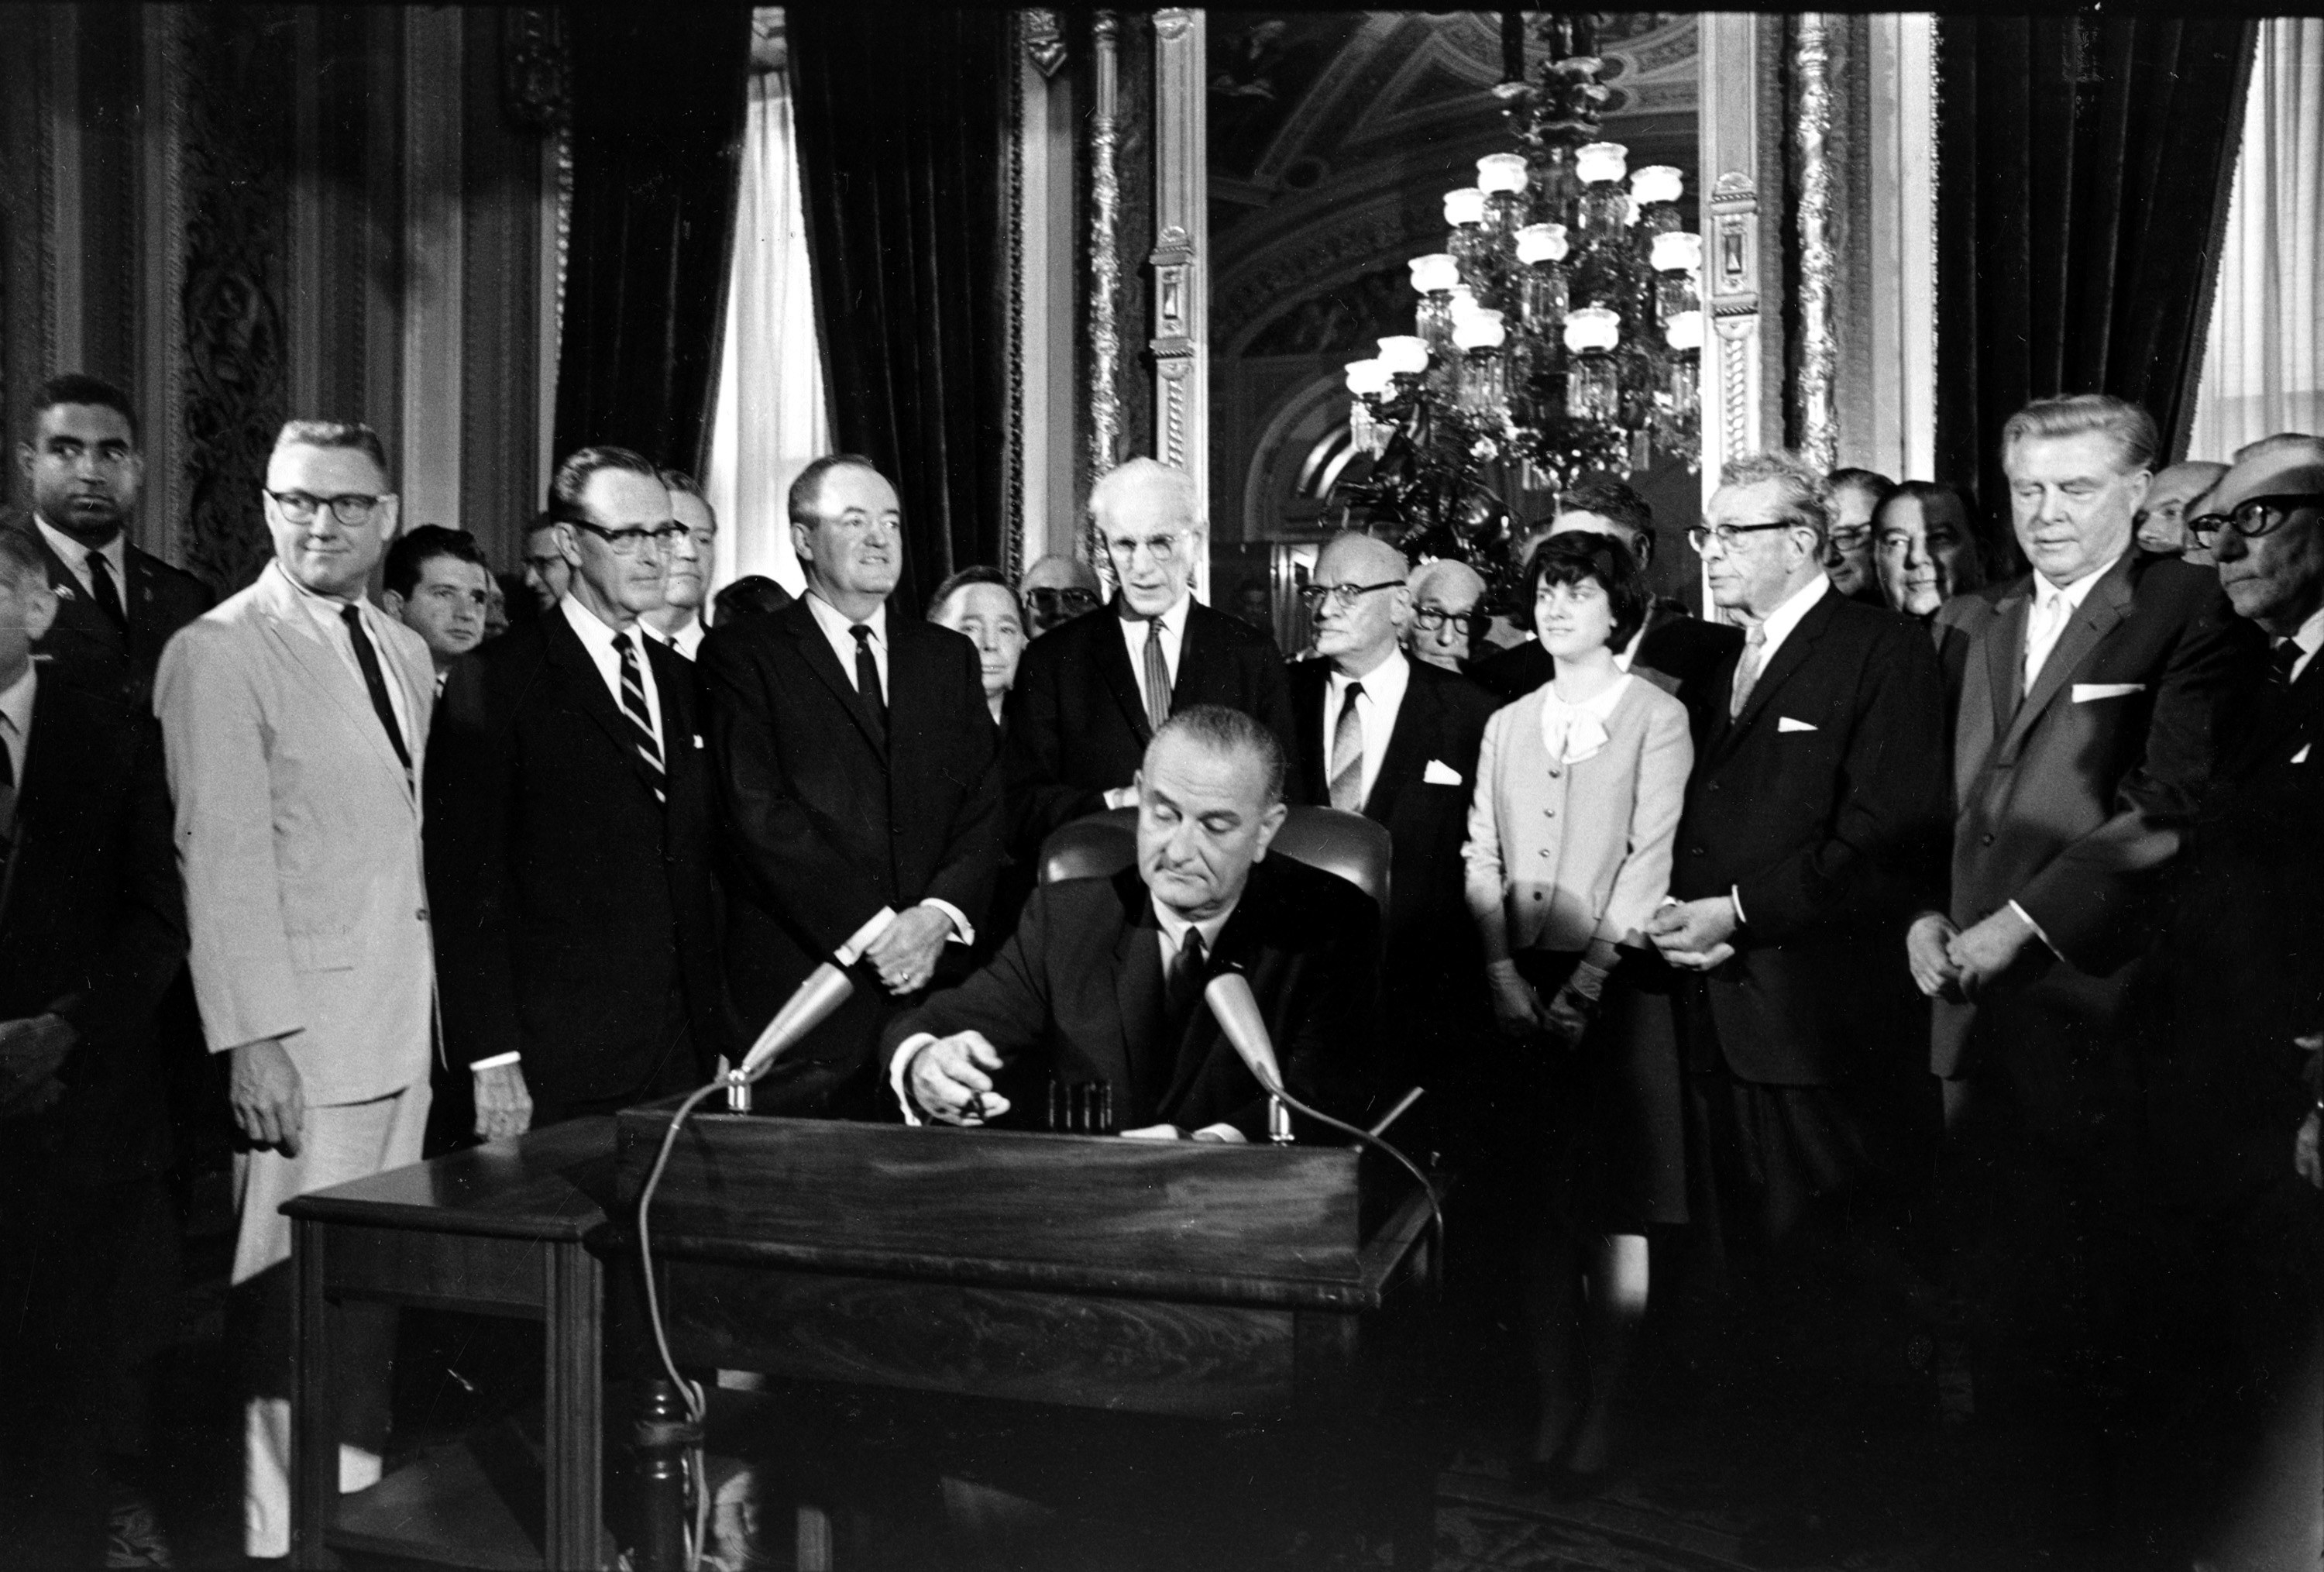 President Lyndon B. Johnson sits at a desk surrounded by white men in suits